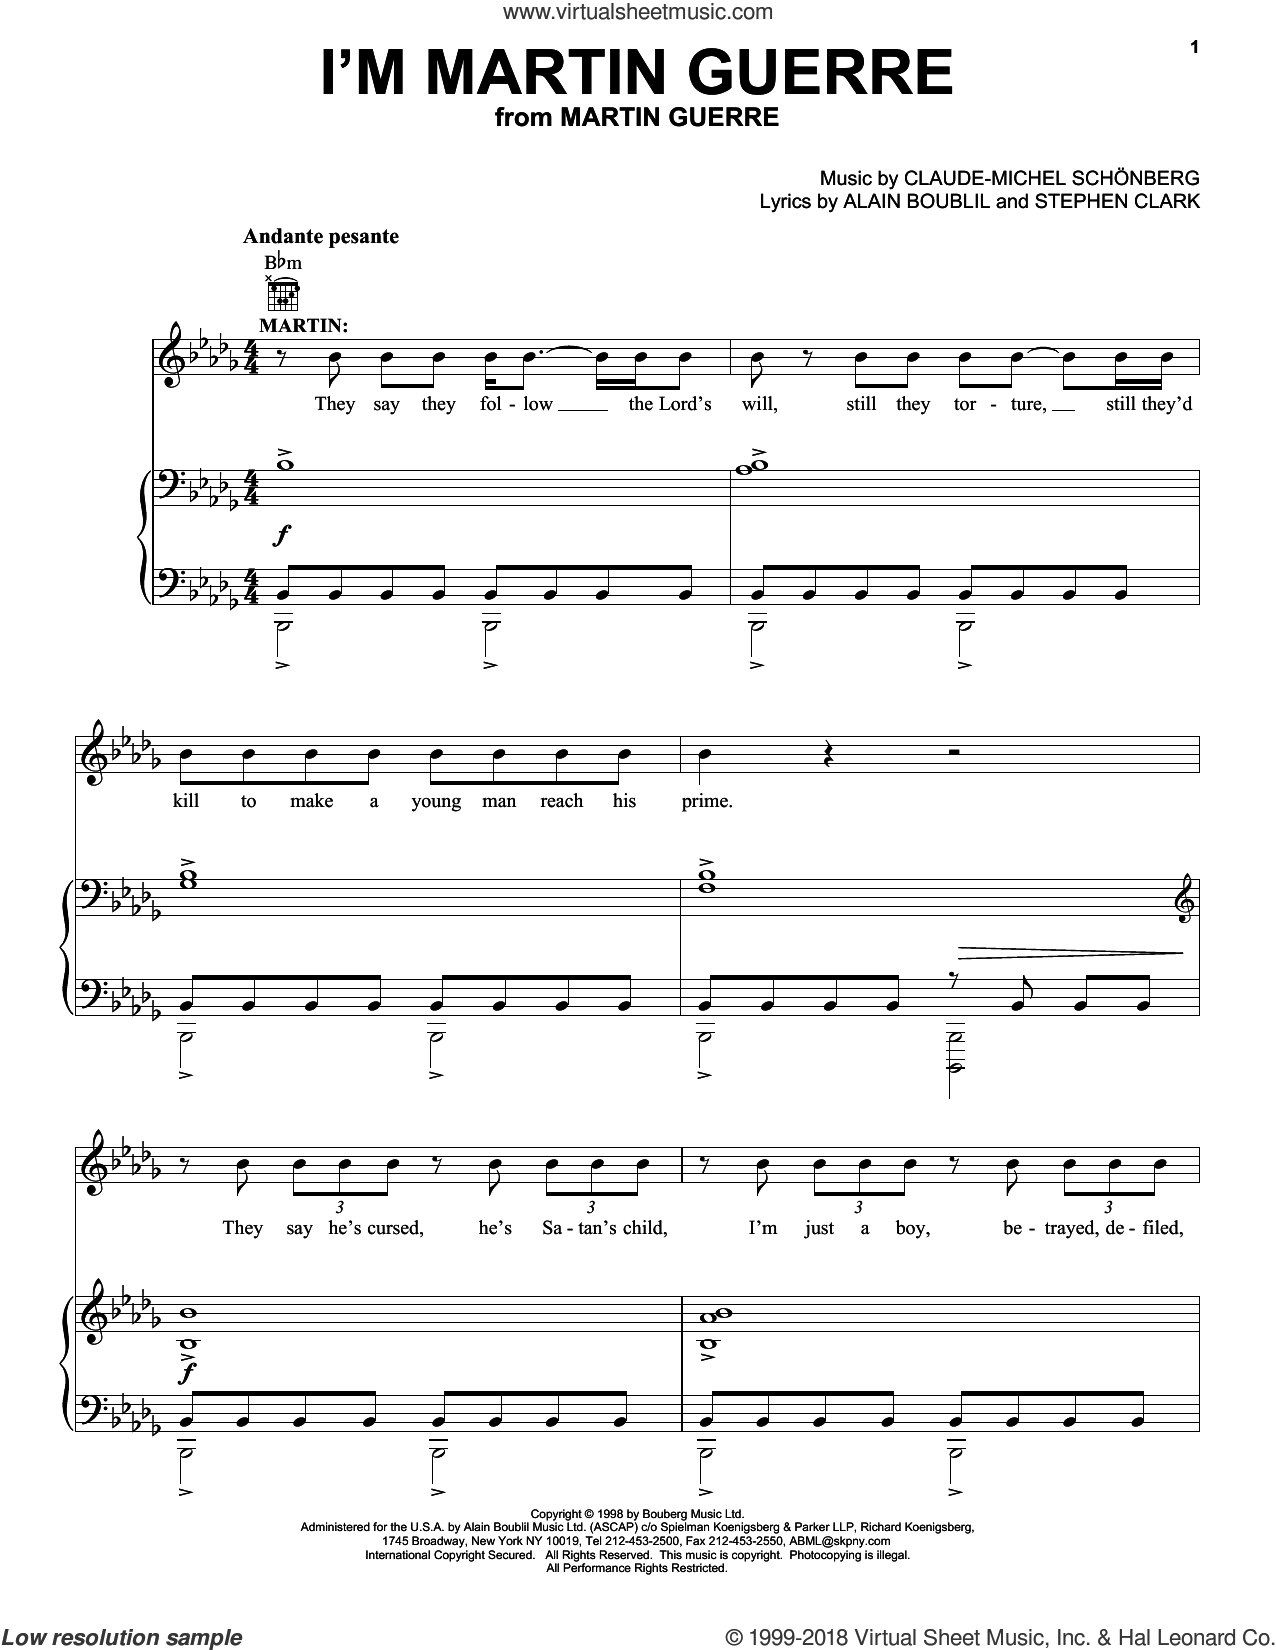 I'm Martin Guerre (from Martin Guerre) sheet music for voice, piano or guitar by Claude-Michel Schonberg, Martin Guerre (Musical), Alain Boublil, Boublil and Schonberg and Steve Clark, intermediate skill level